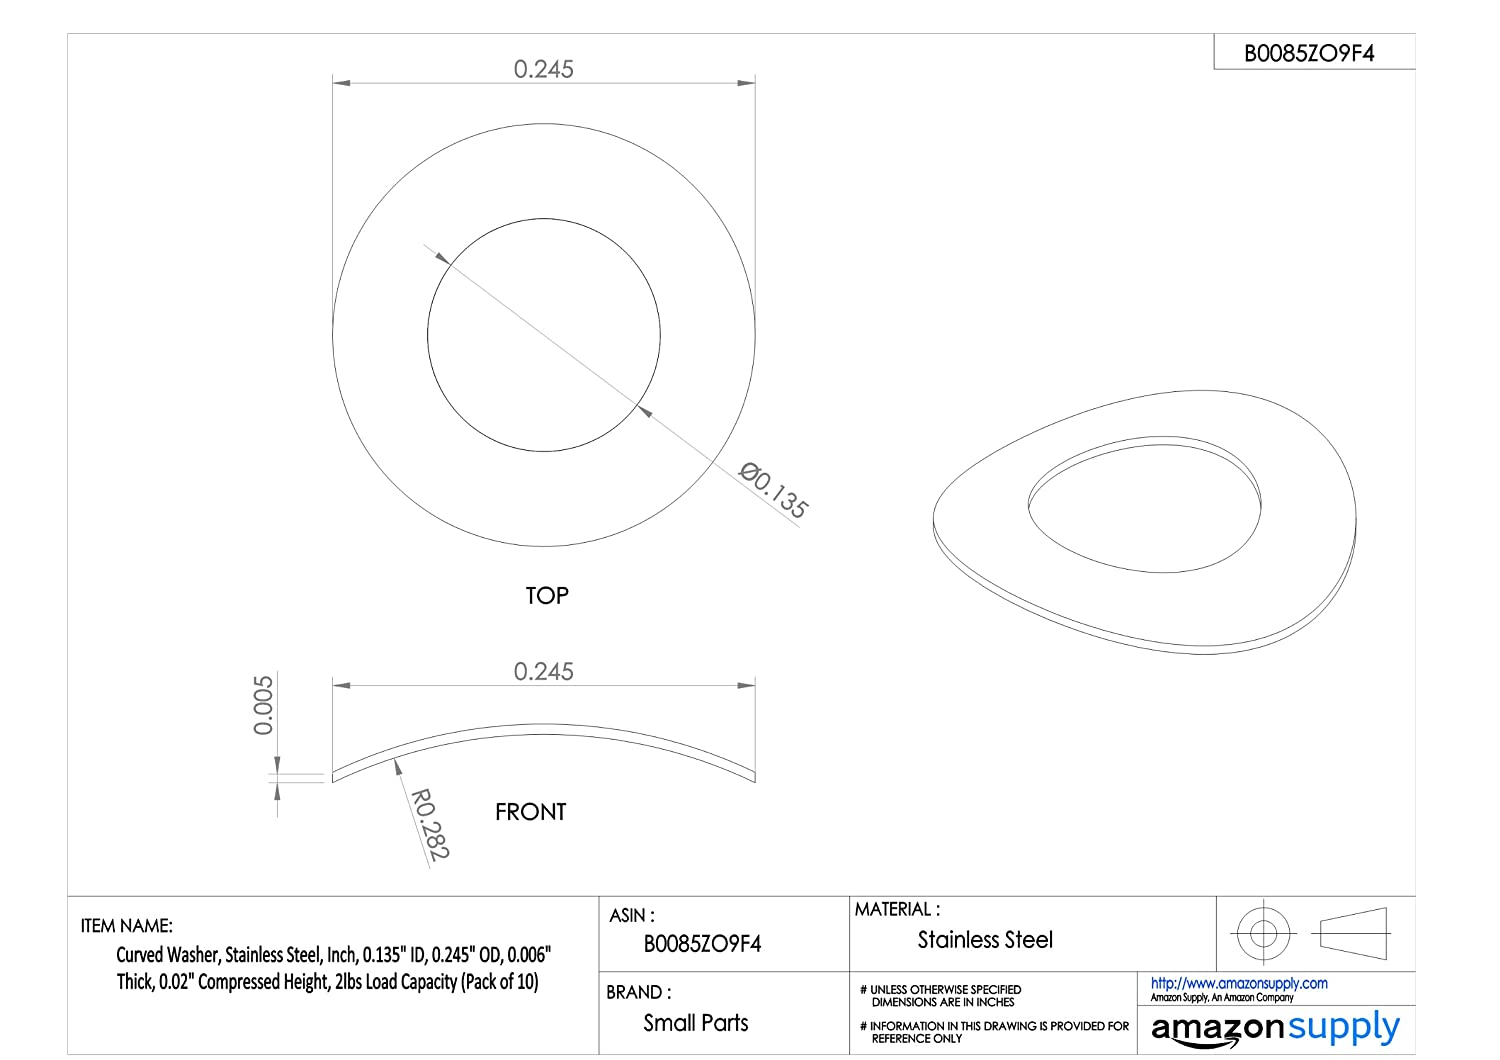 0.006 Thick Inch Pack of 10 Curved Washer 0.245 OD 0.02 Compressed Height 2lbs Load Capacity 0.135 ID Stainless Steel